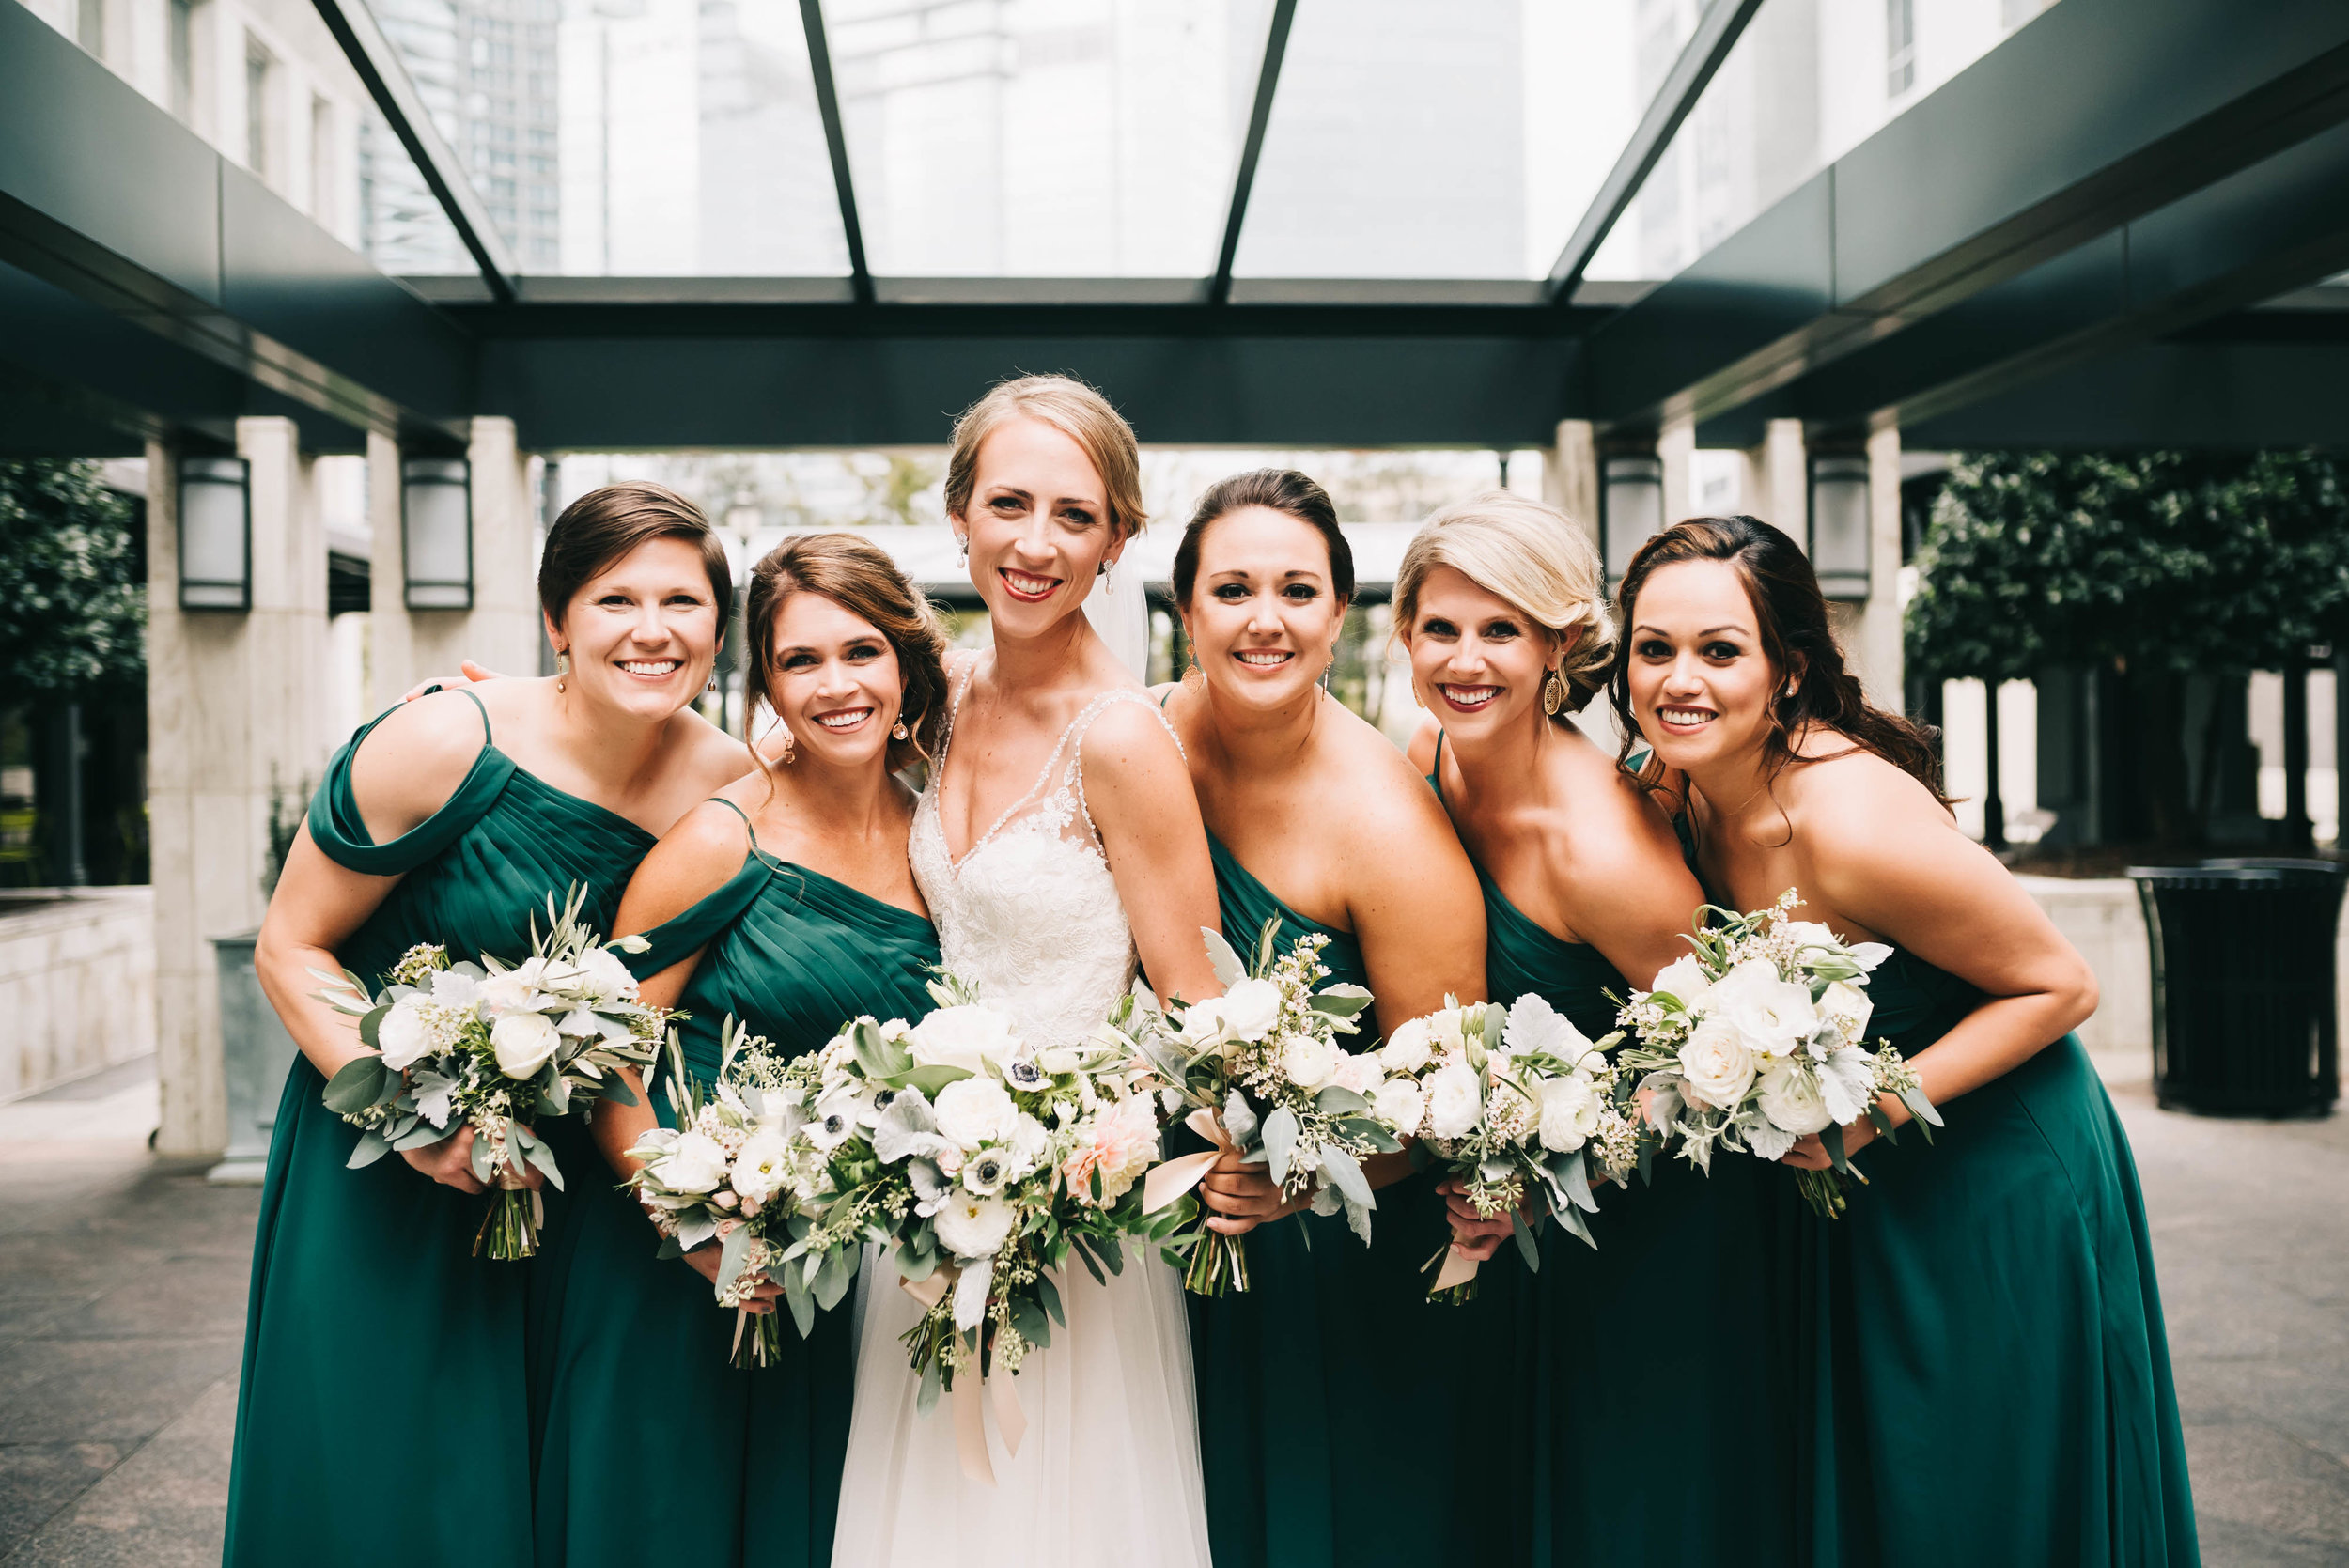 atlanta georgia midtown modern timeless nontraditional wedding photographer-371.jpg